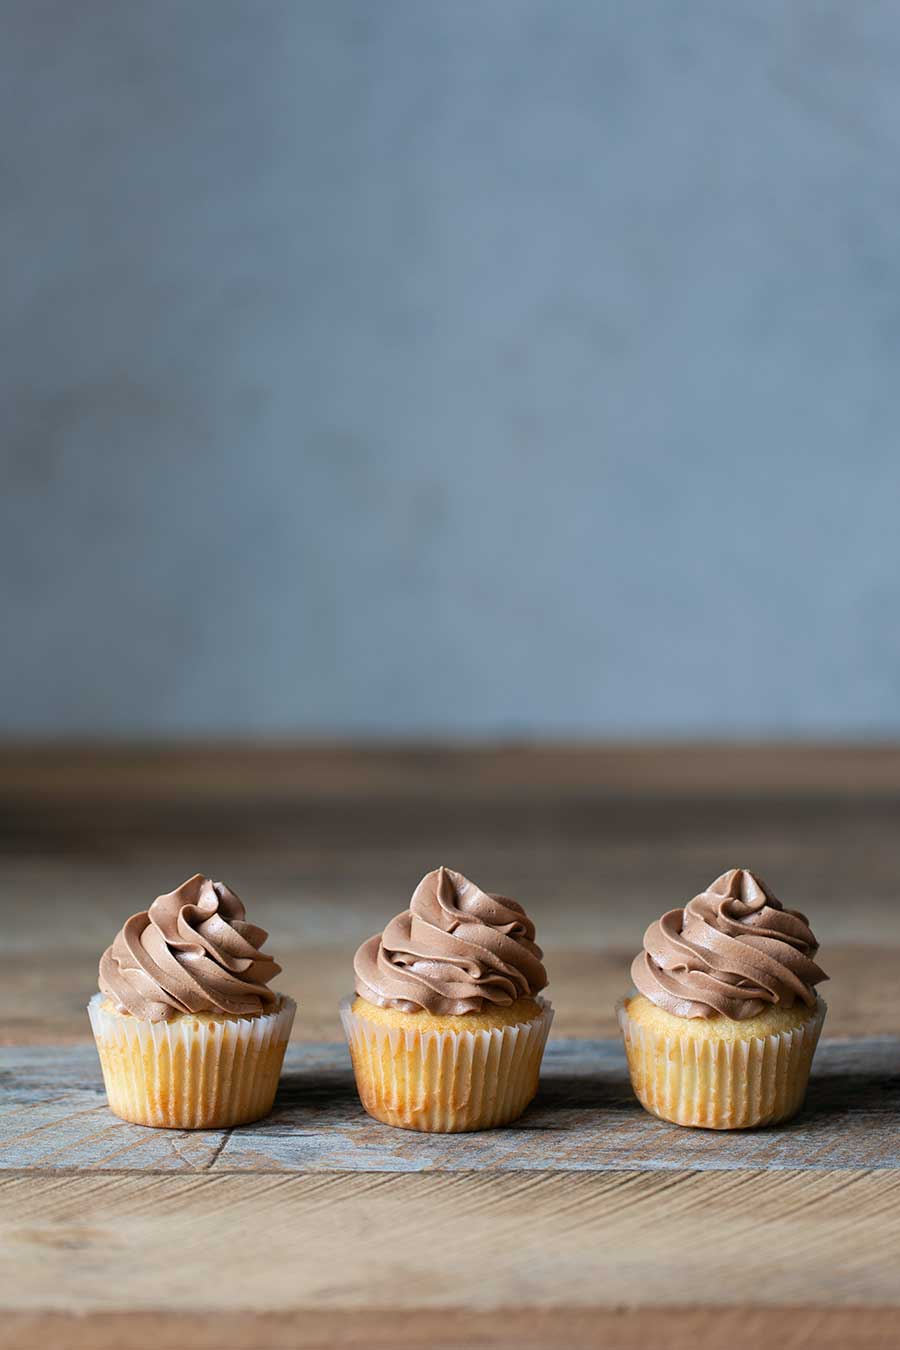 How many carbs in a vanilla cupcake with chocolate frosting